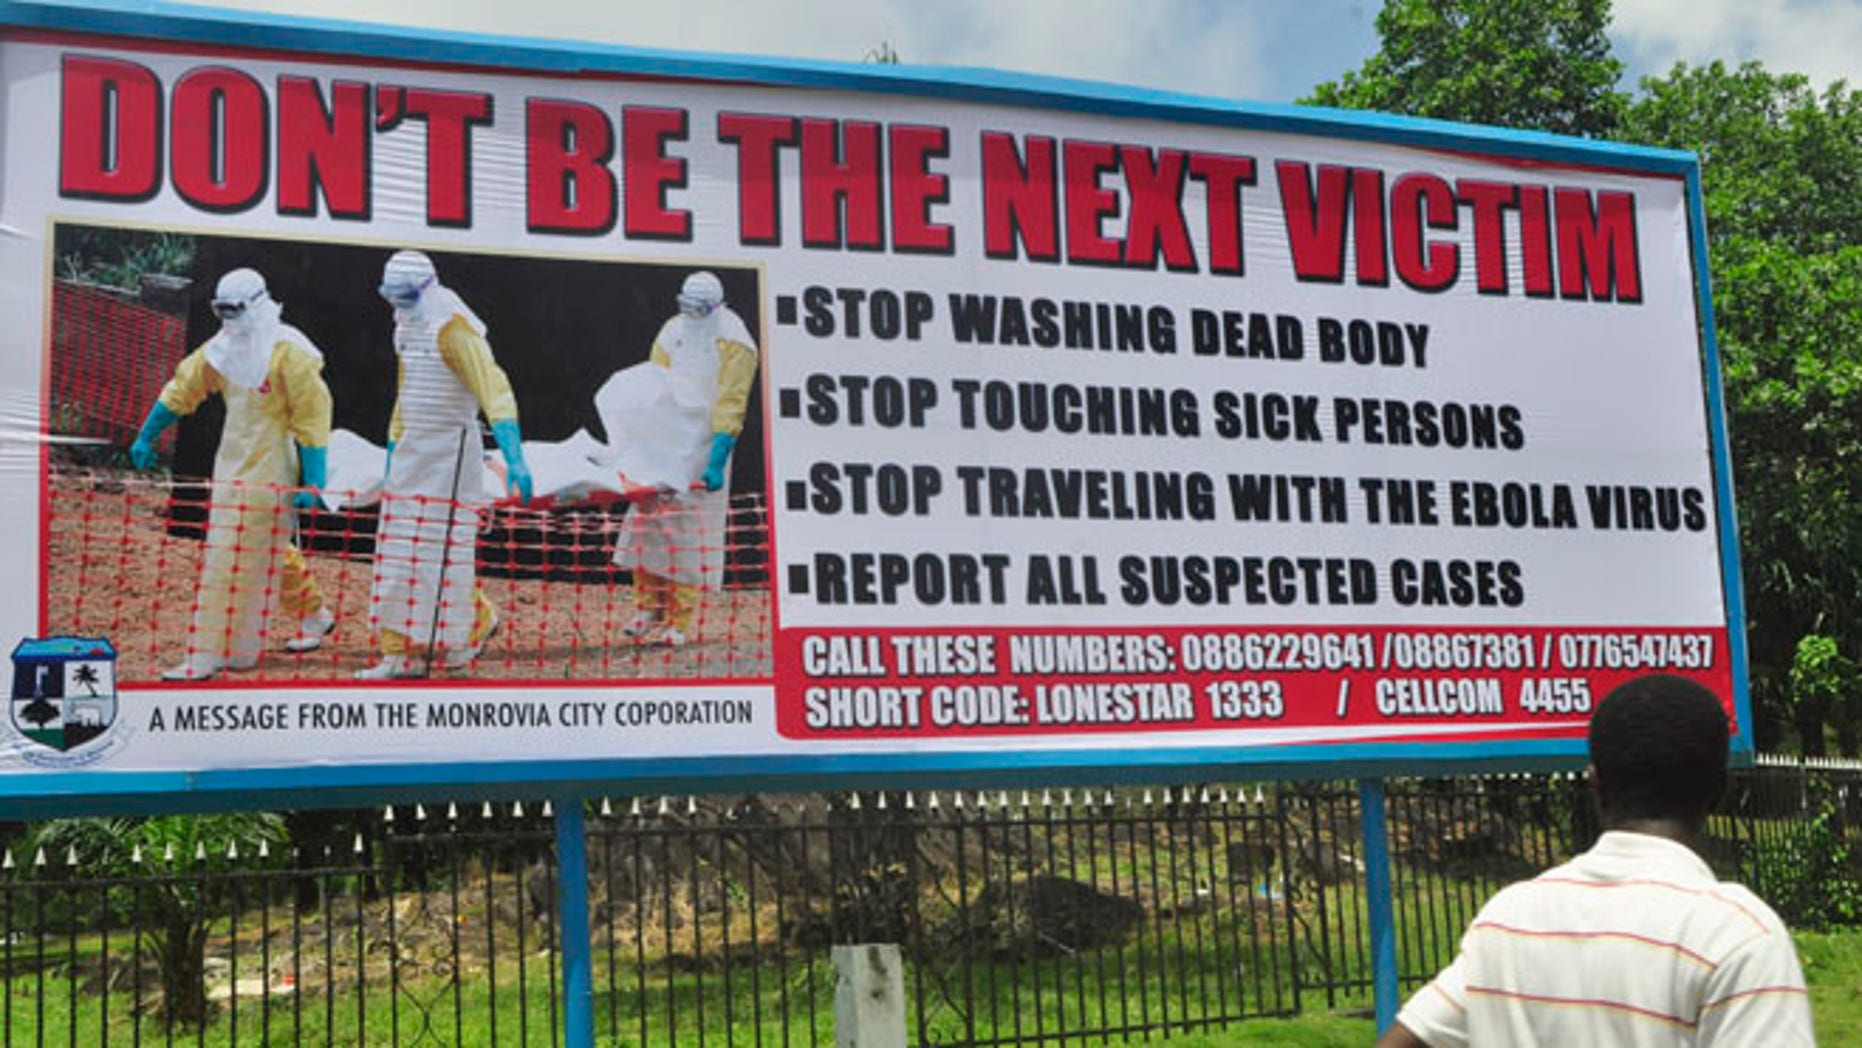 Oct. 10, 2014: A man walks past a billboard warning people of the deadly Ebola virus in Monrovia, Liberia